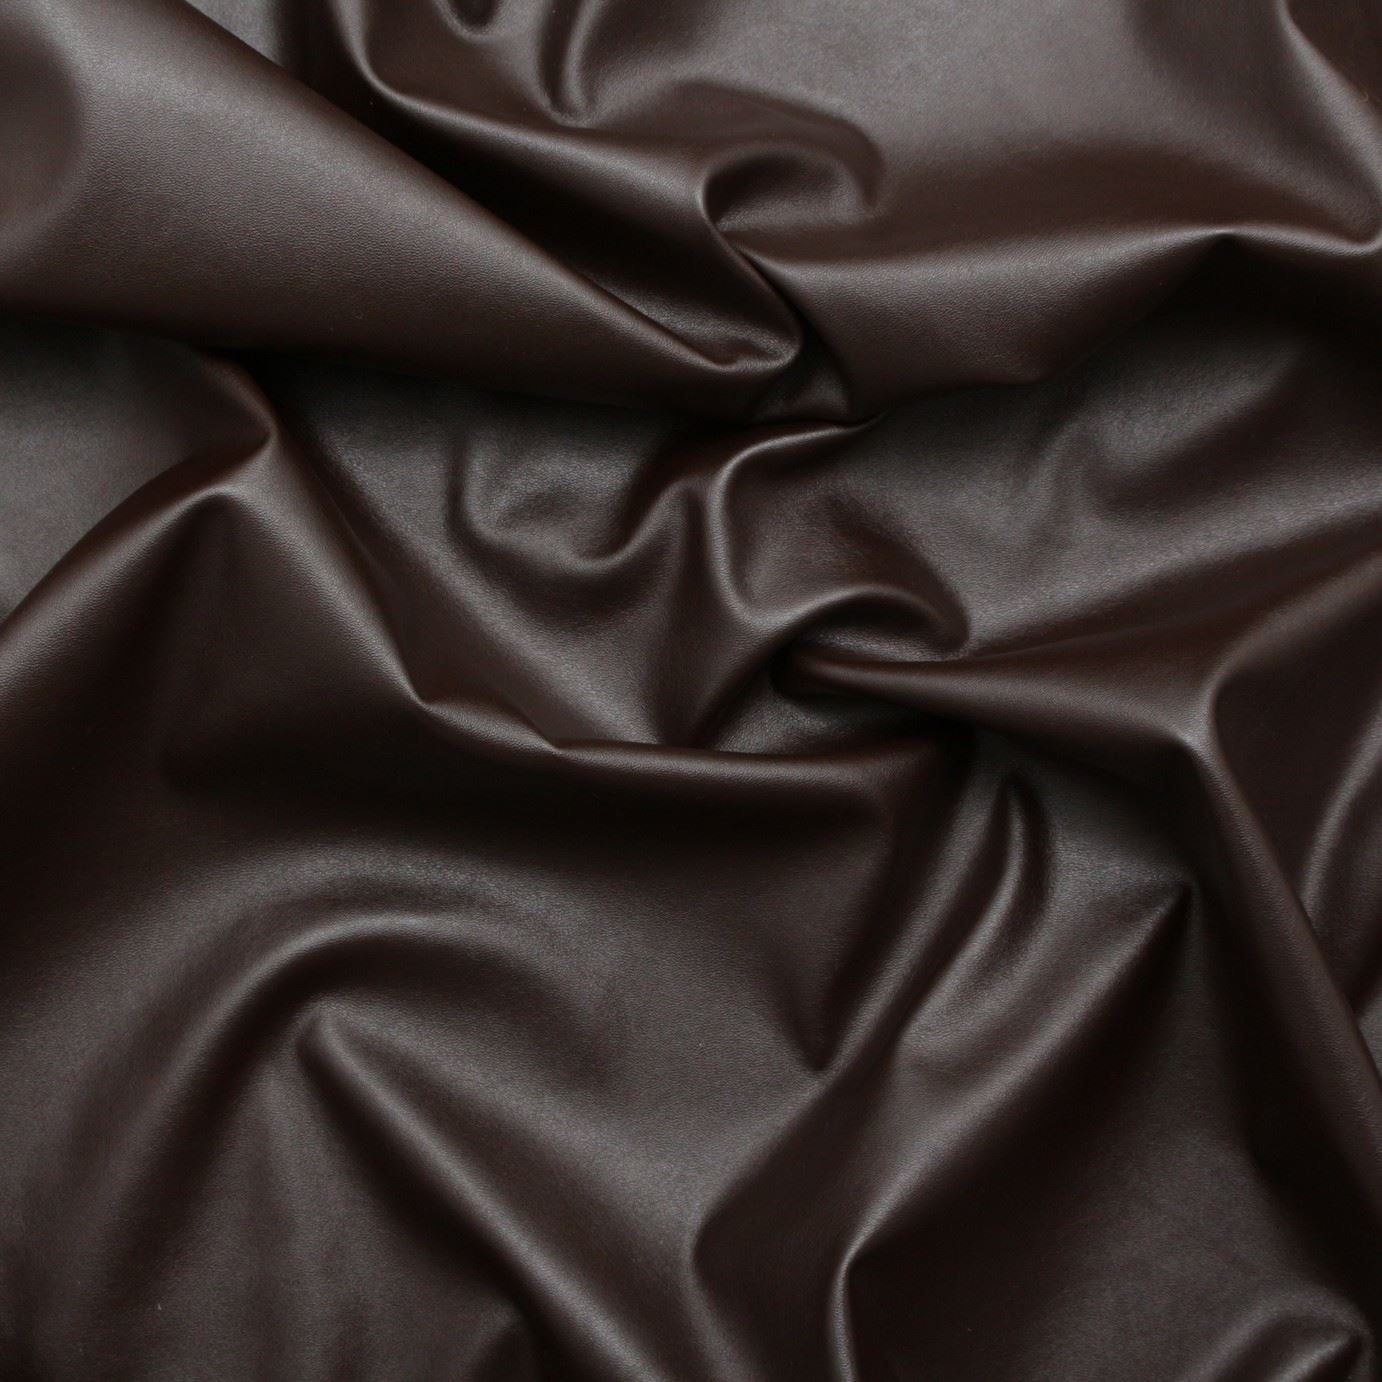 thumbnail 7 - Faux Leather Dress Making Clothing Leatherette Lycra Stretch Fabric PVC Material